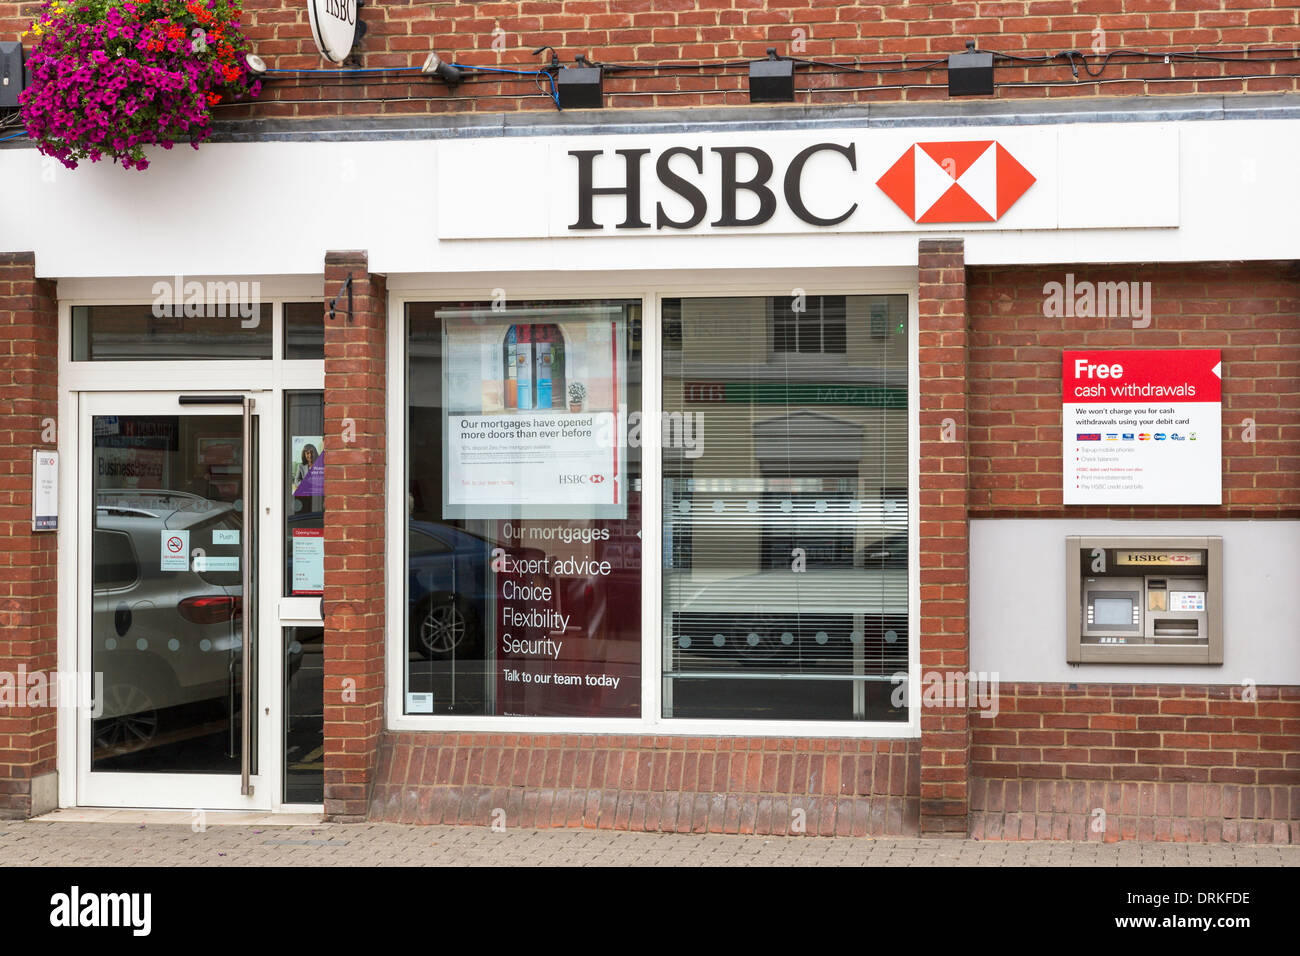 Hsbc Stock Photos & Hsbc Stock Images - Alamy